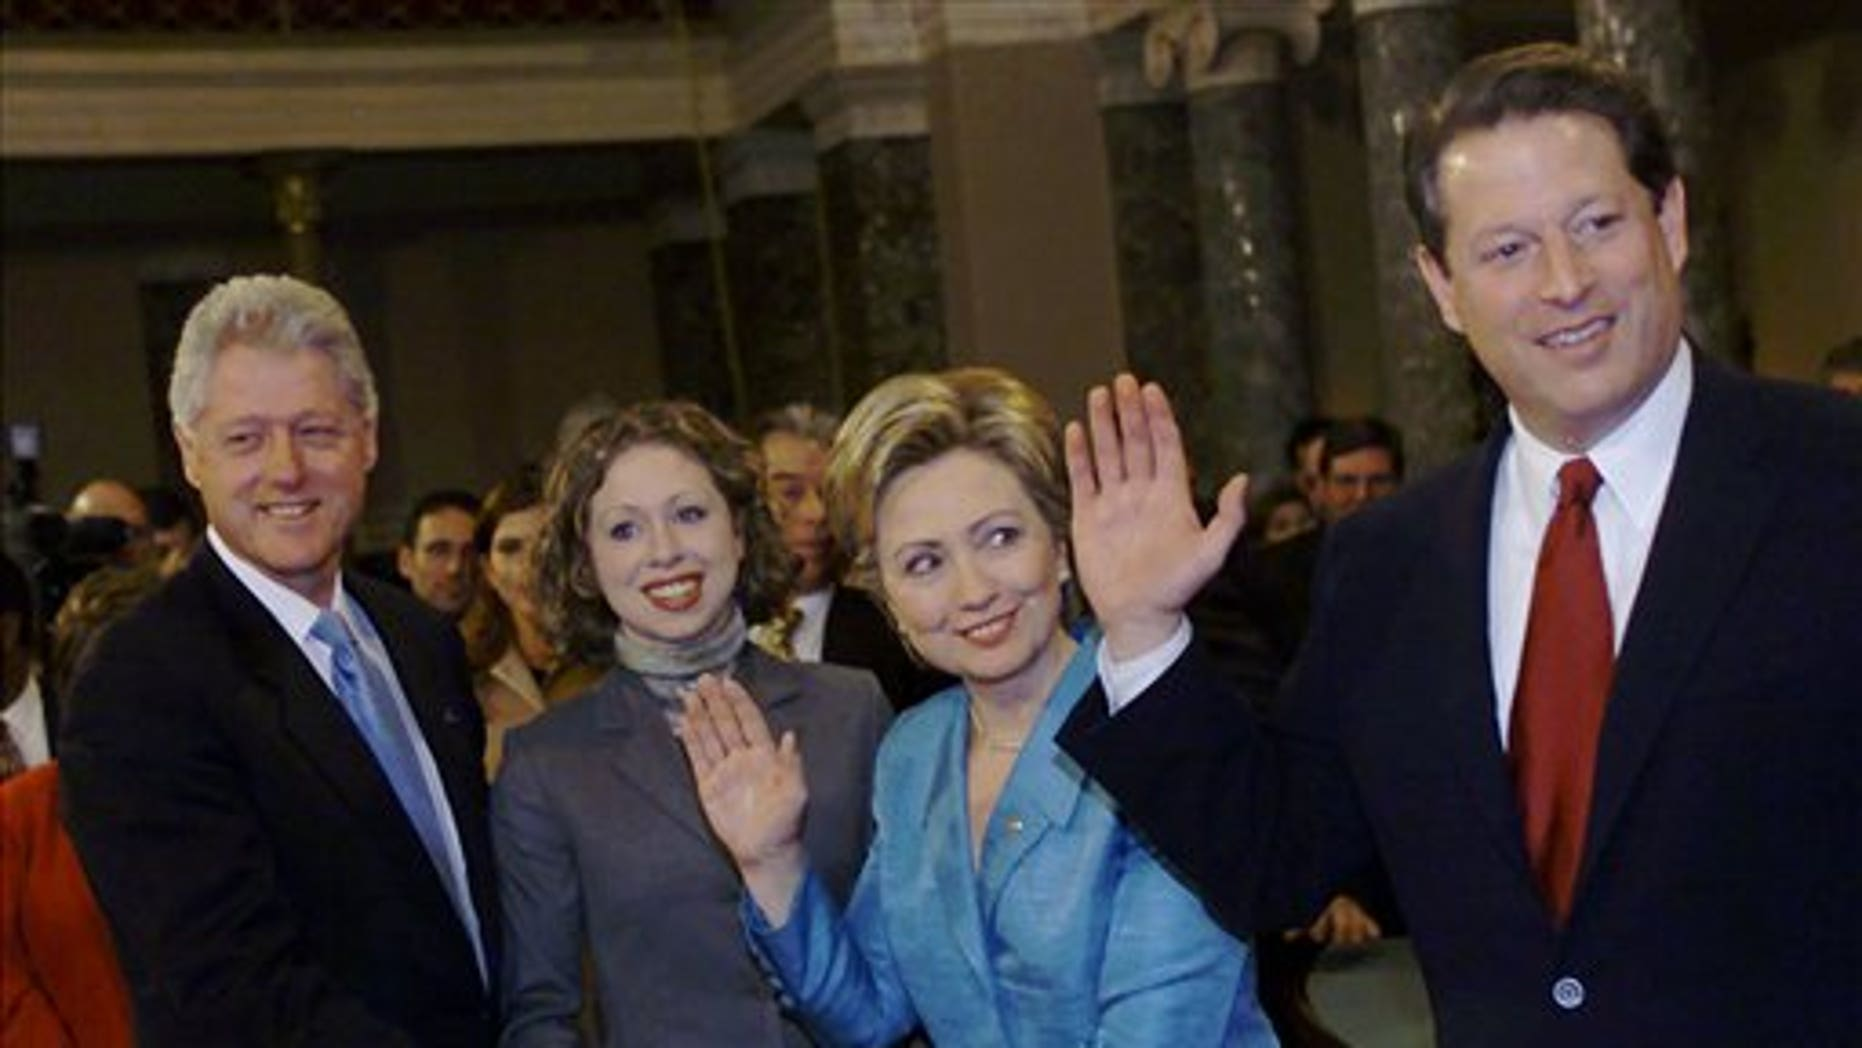 FILE - In this Jan. 3, 2001, file photo, then-President Bill Clinton, left, and daughter Chelsea hold a Bible during a mock swearing-in for freshman Sen. Hillary Rodham Clinton, D-N.Y. by Vice President Al Gore in Washington. (AP Photo/Hillery Smith Garrison, File)